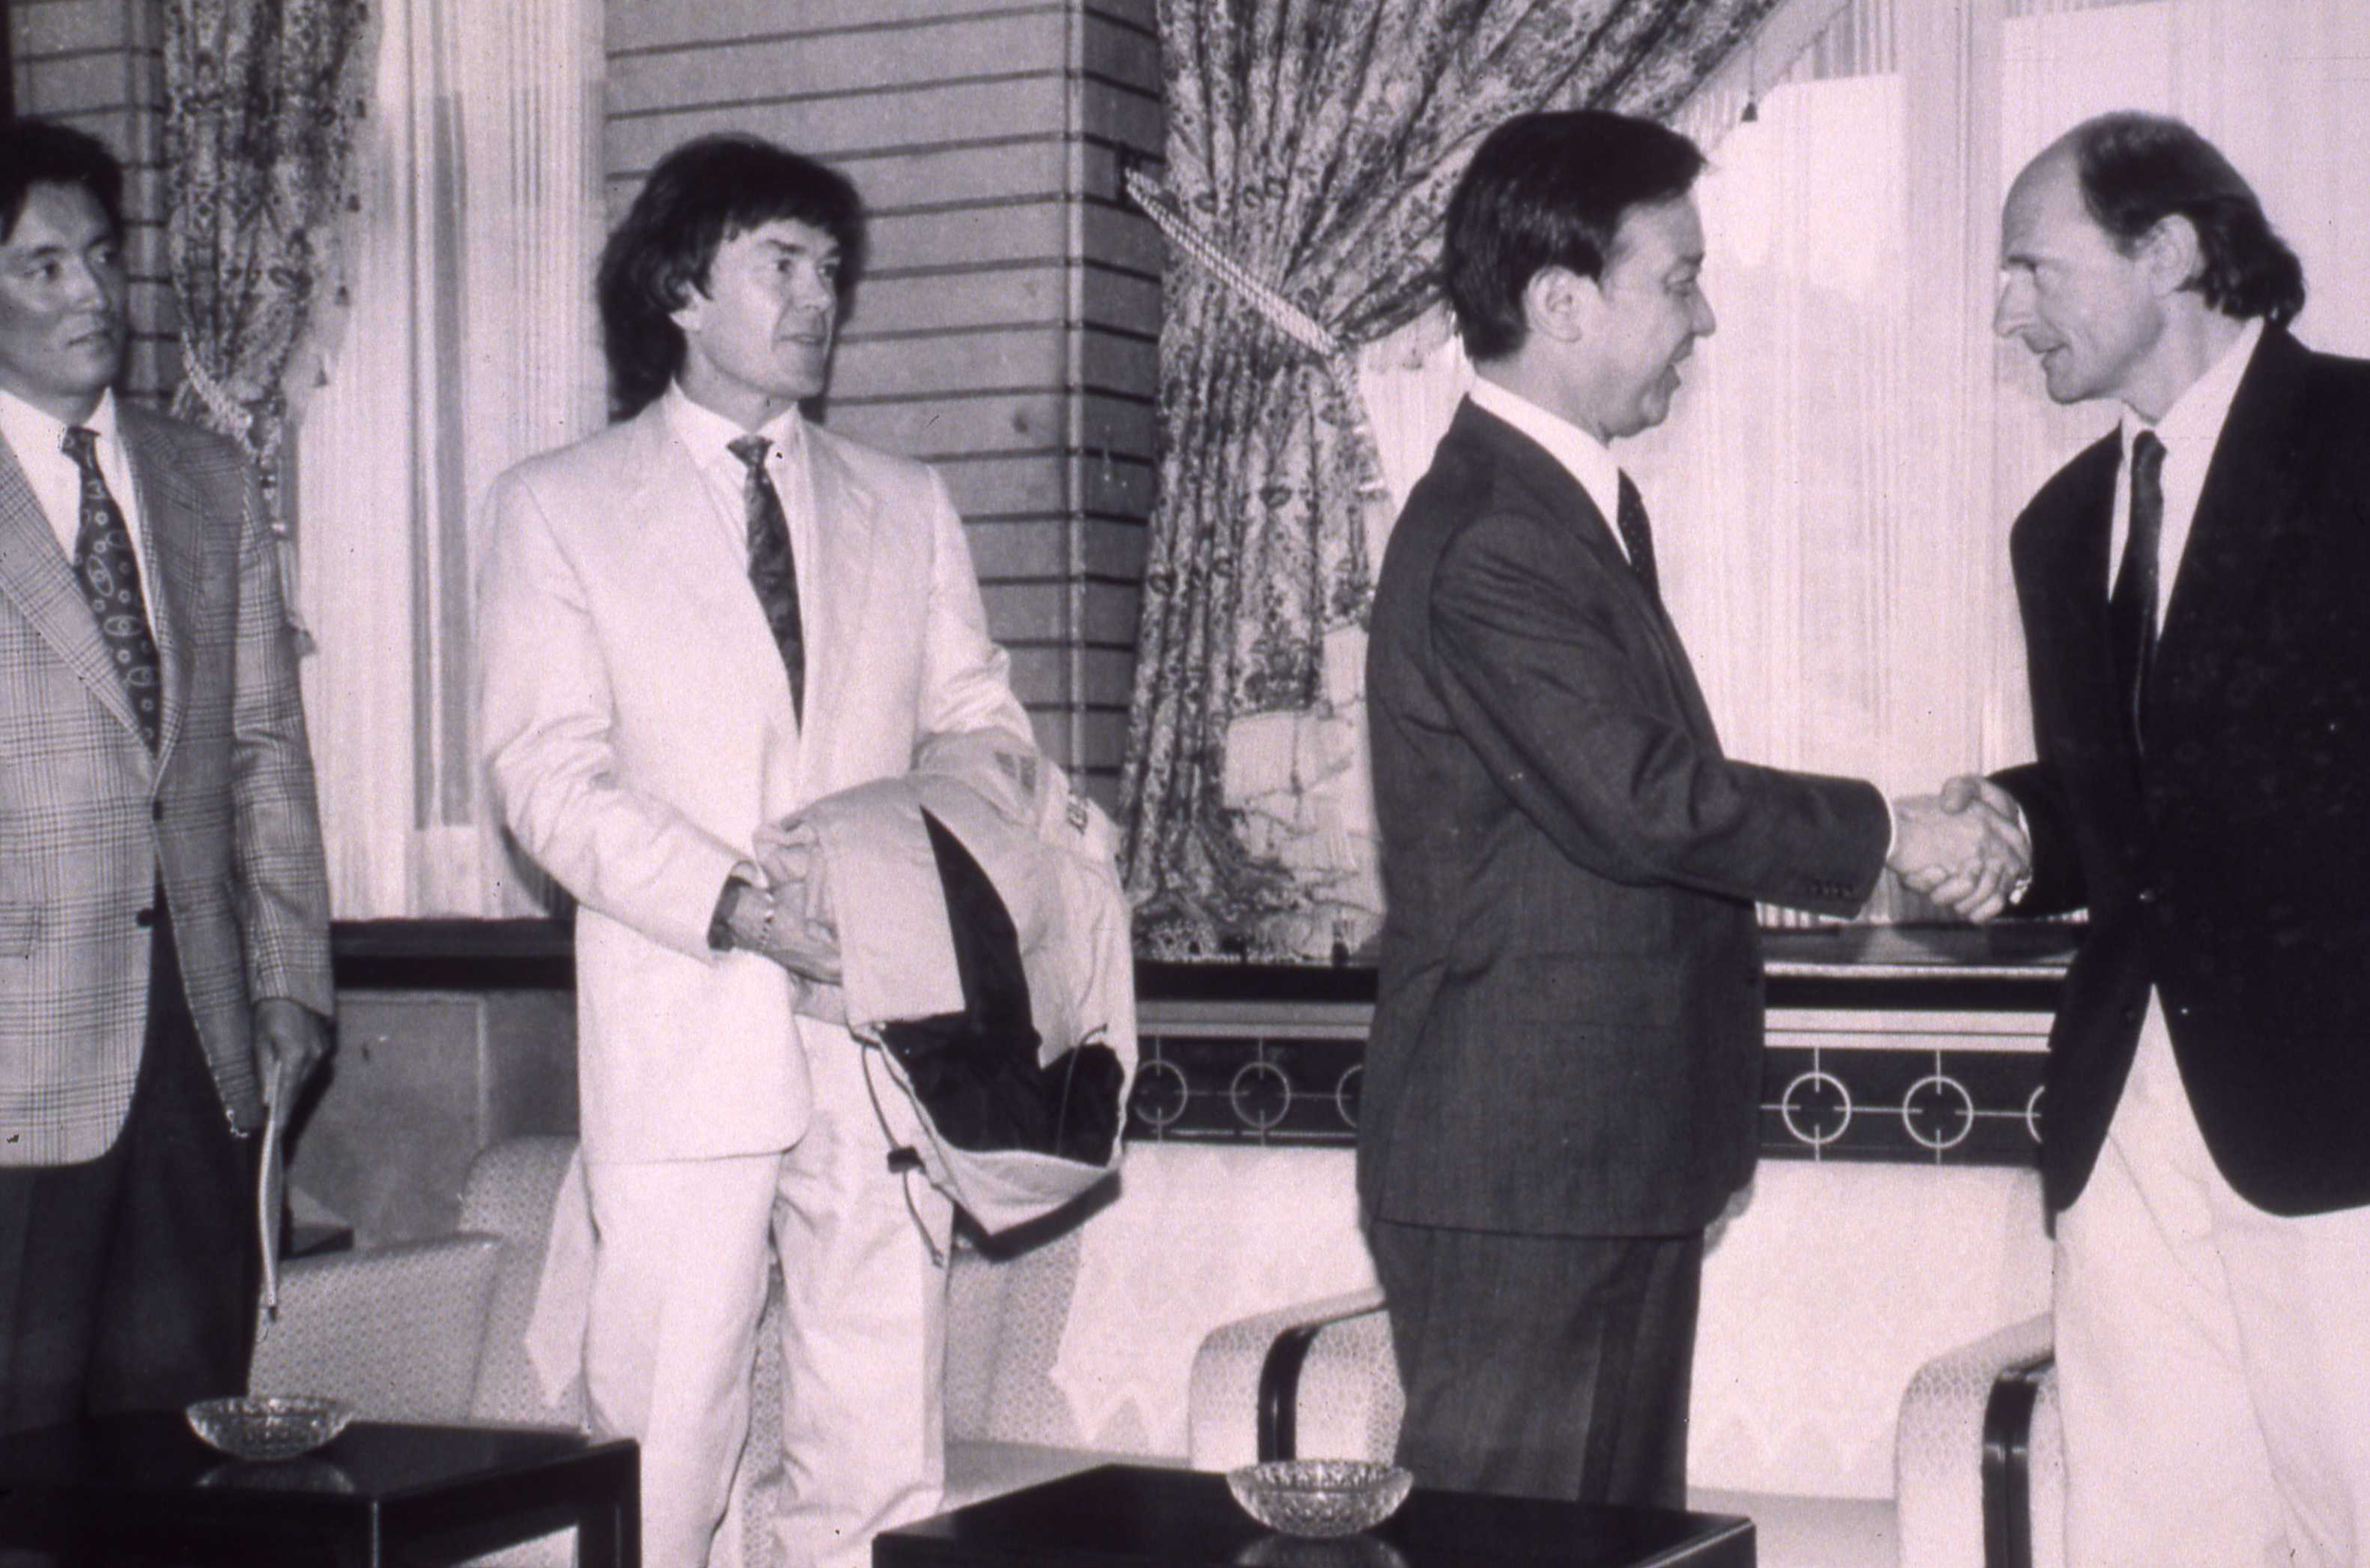 Expedition co-leader Jean-Louis Etienne visits with Japanese Prime Minister Toshiba Kaifu. Photo K. Okumura